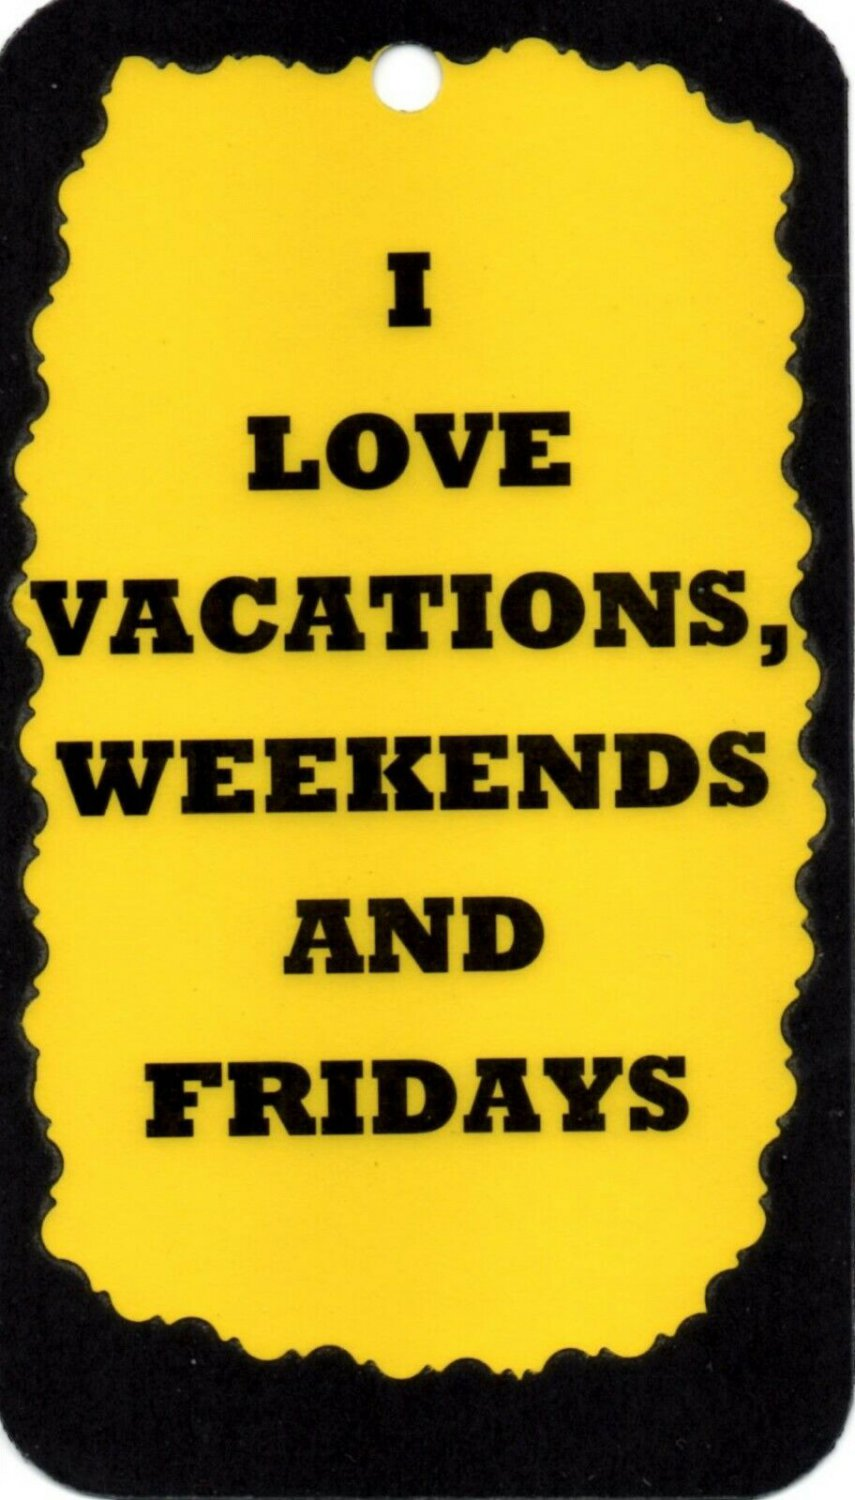 3012 I Love Vacations, Weekends And Fridays Funny Comic Saying Signs Plaques Great Gifts